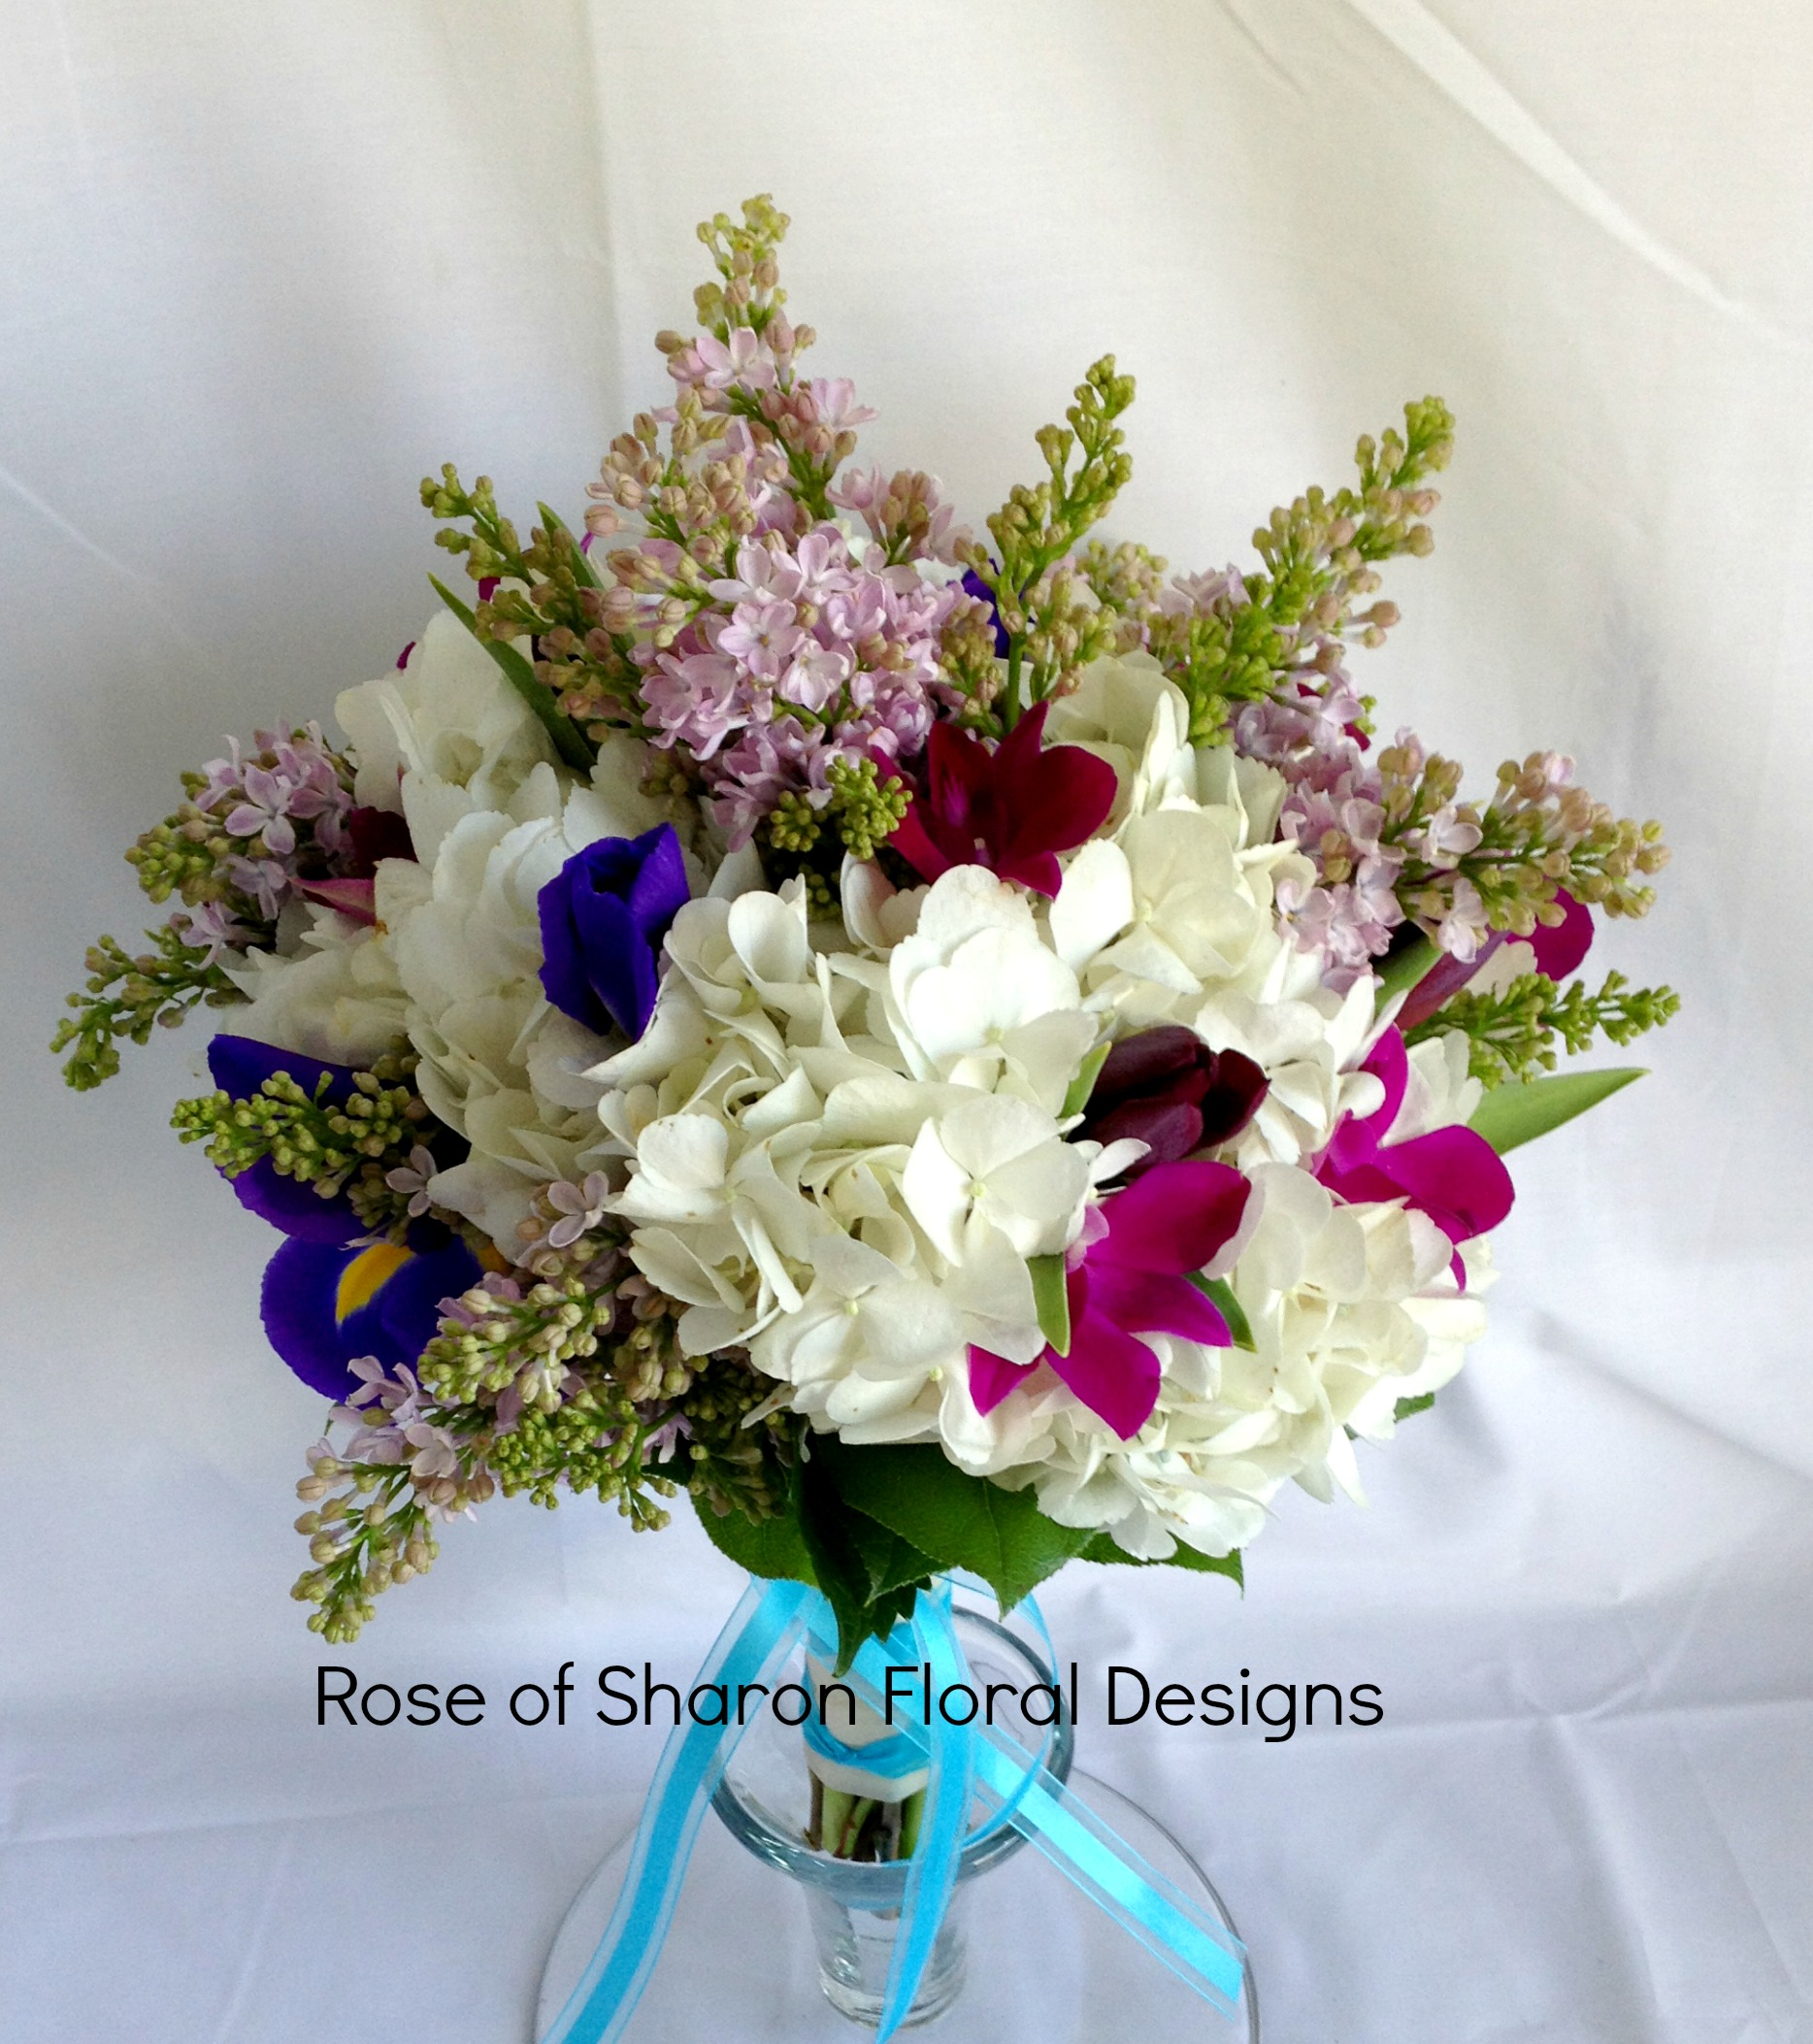 Hydrangea, Stock, Iris and Orchid Bouquets in White and Purple, Rose of Sharon Floral Designs